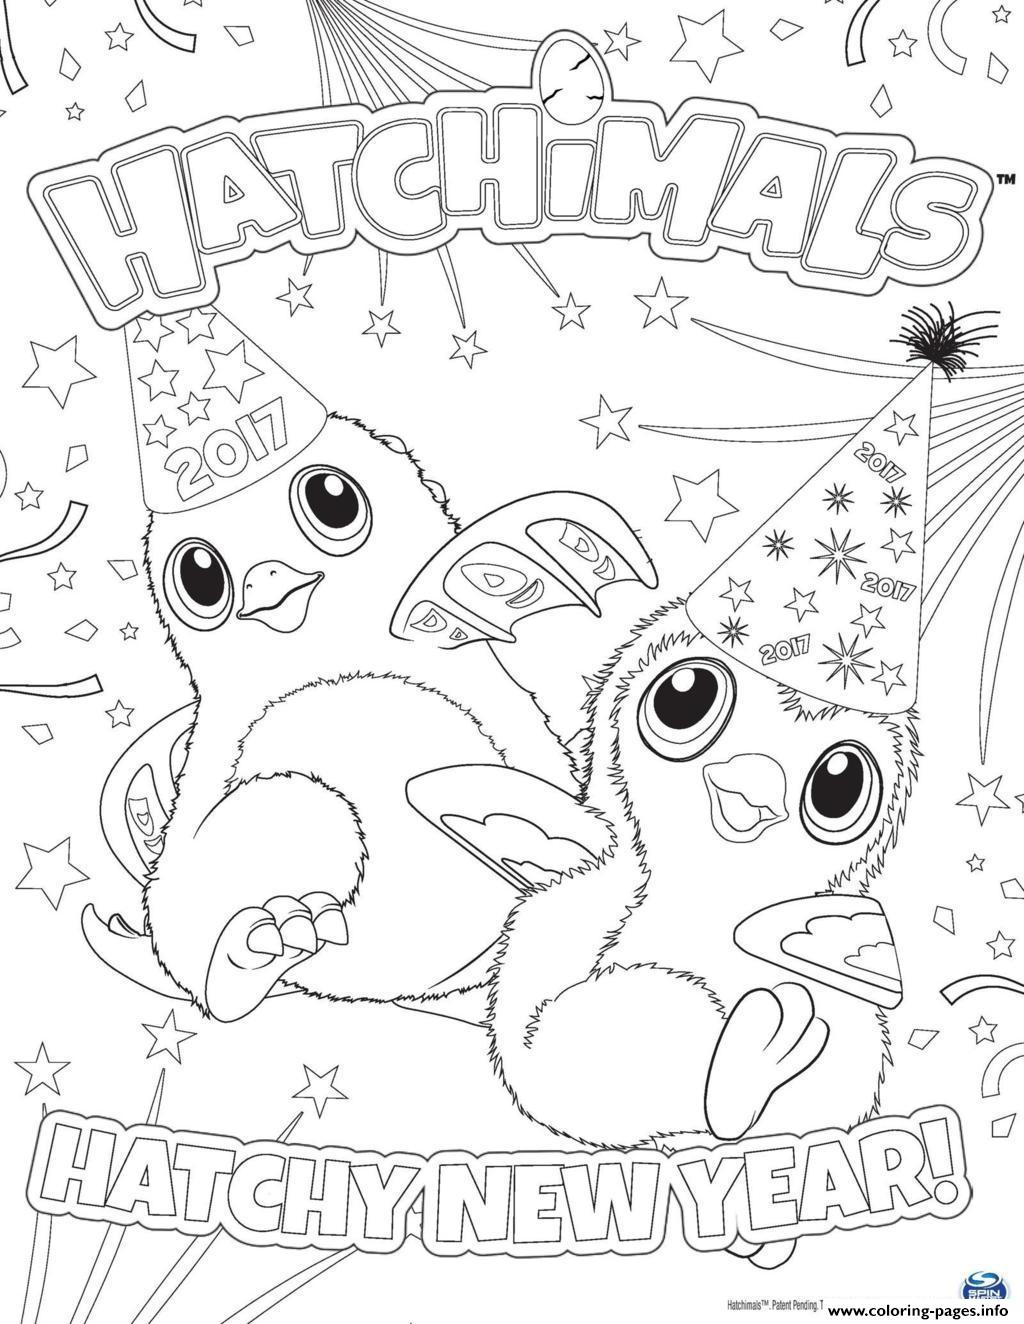 hatchimals happy newyear 2017 hatchy coloring pages printable